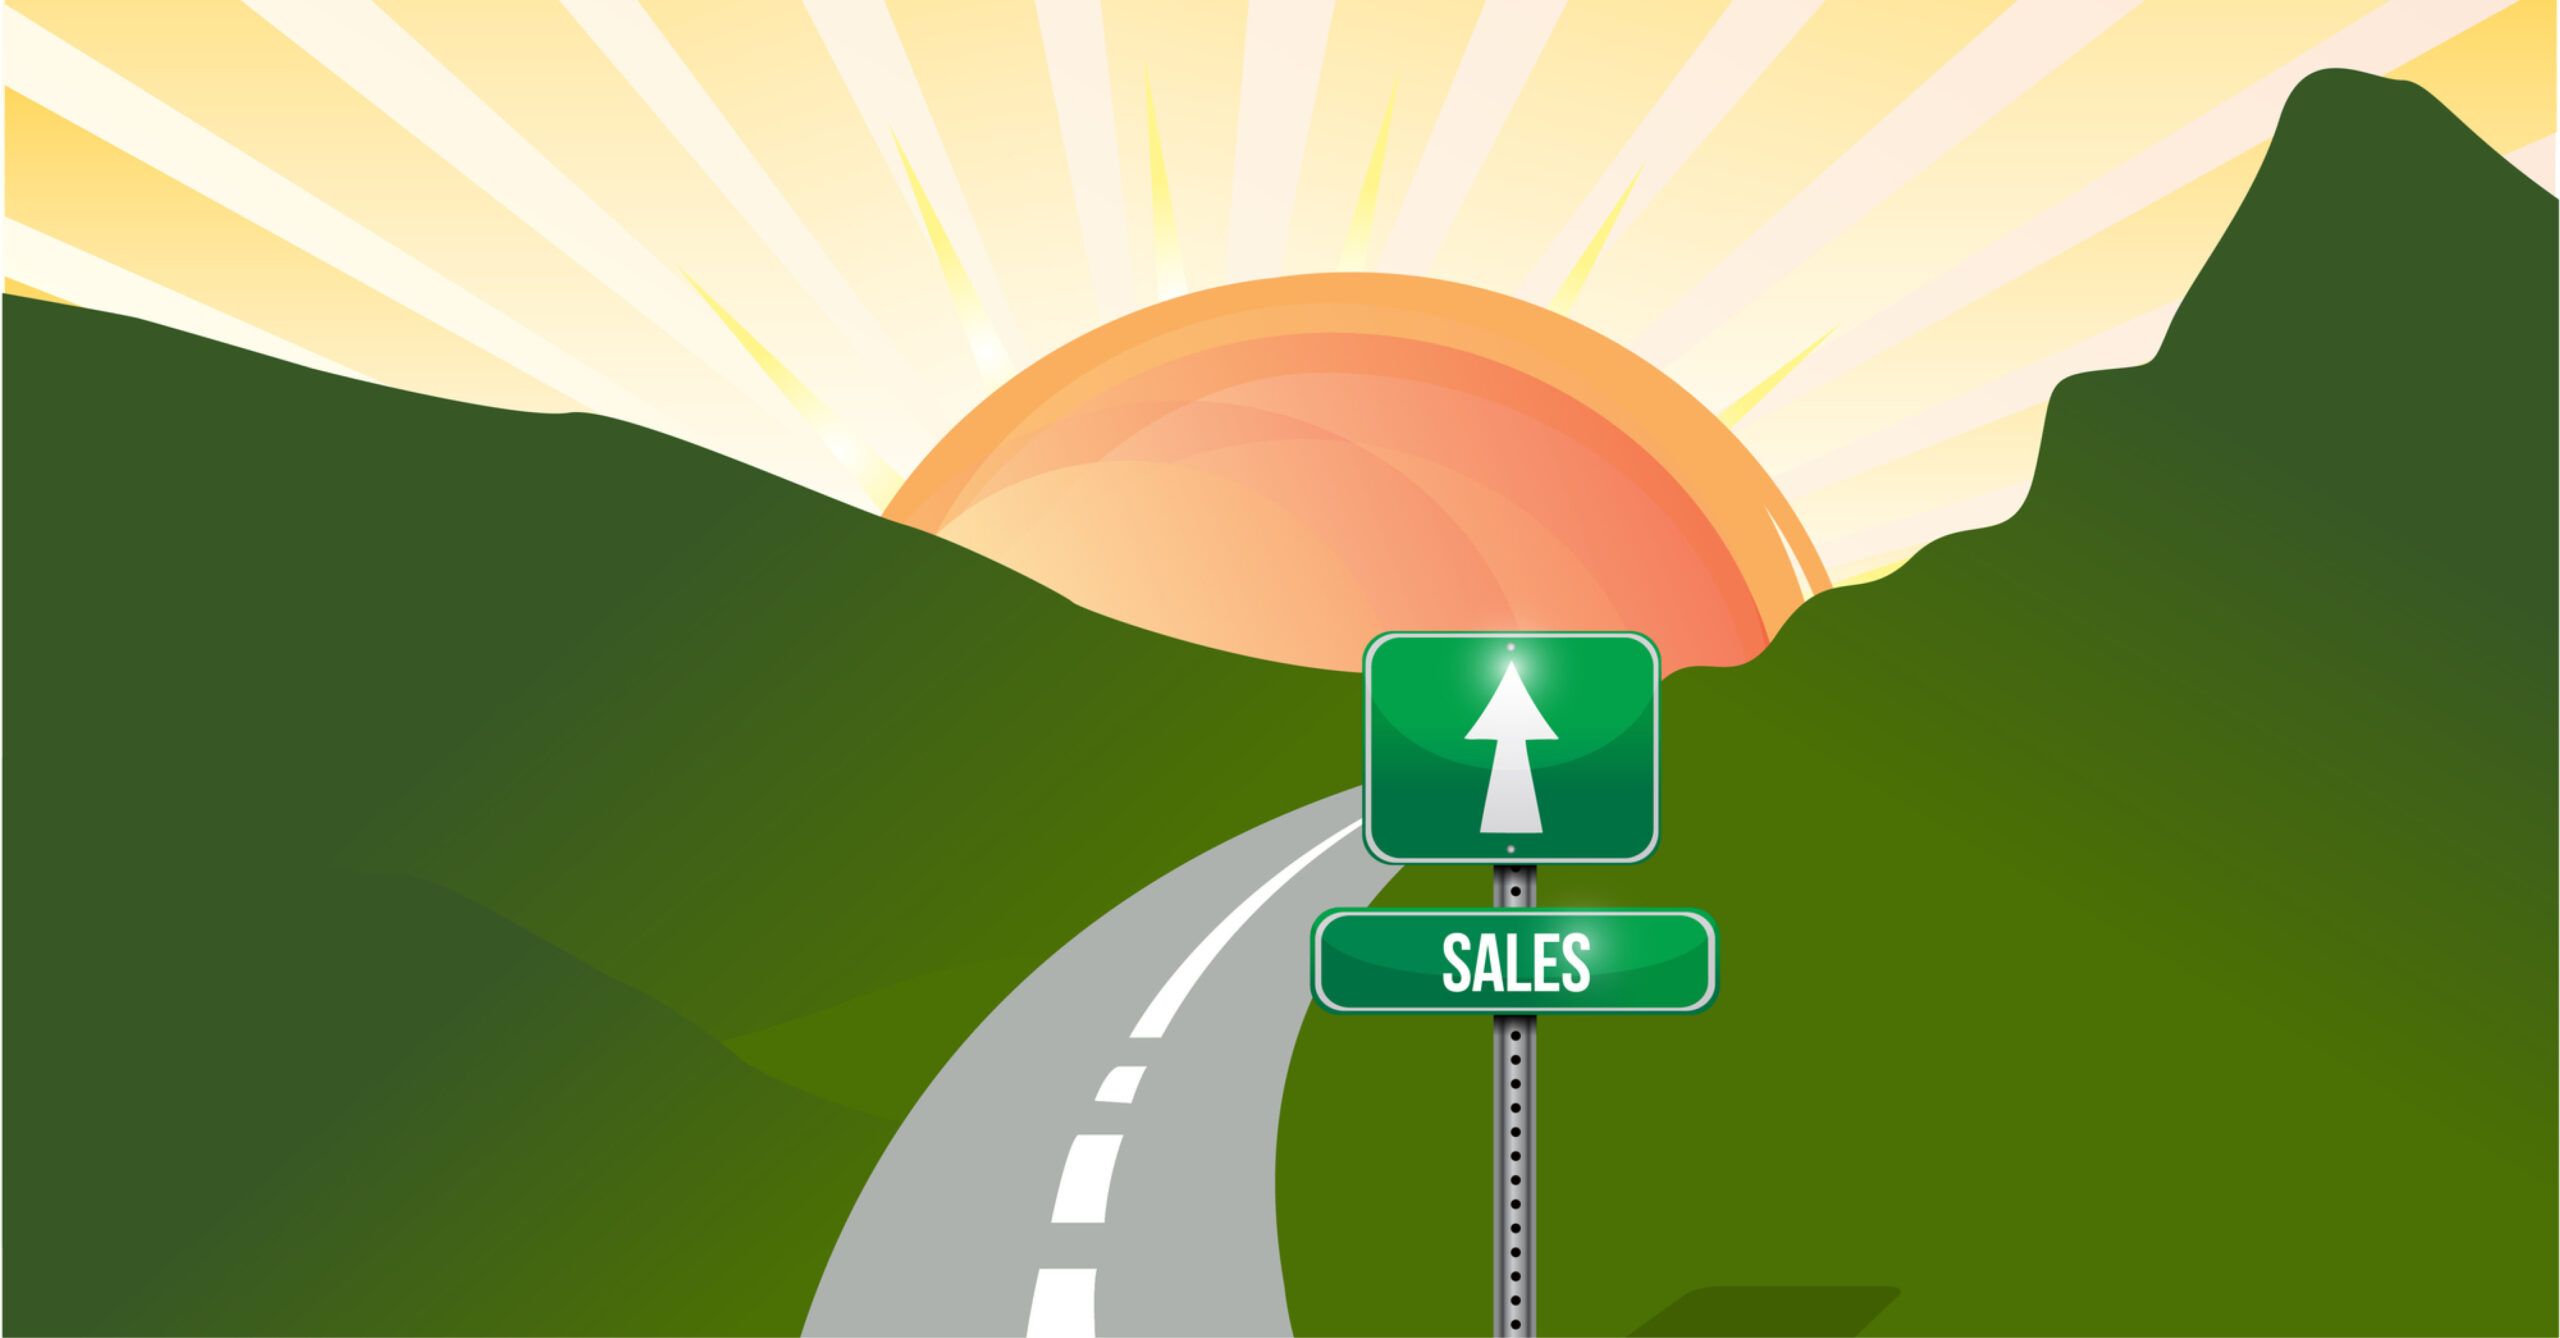 How To Heat Up Your Store's Sales All Summer Long